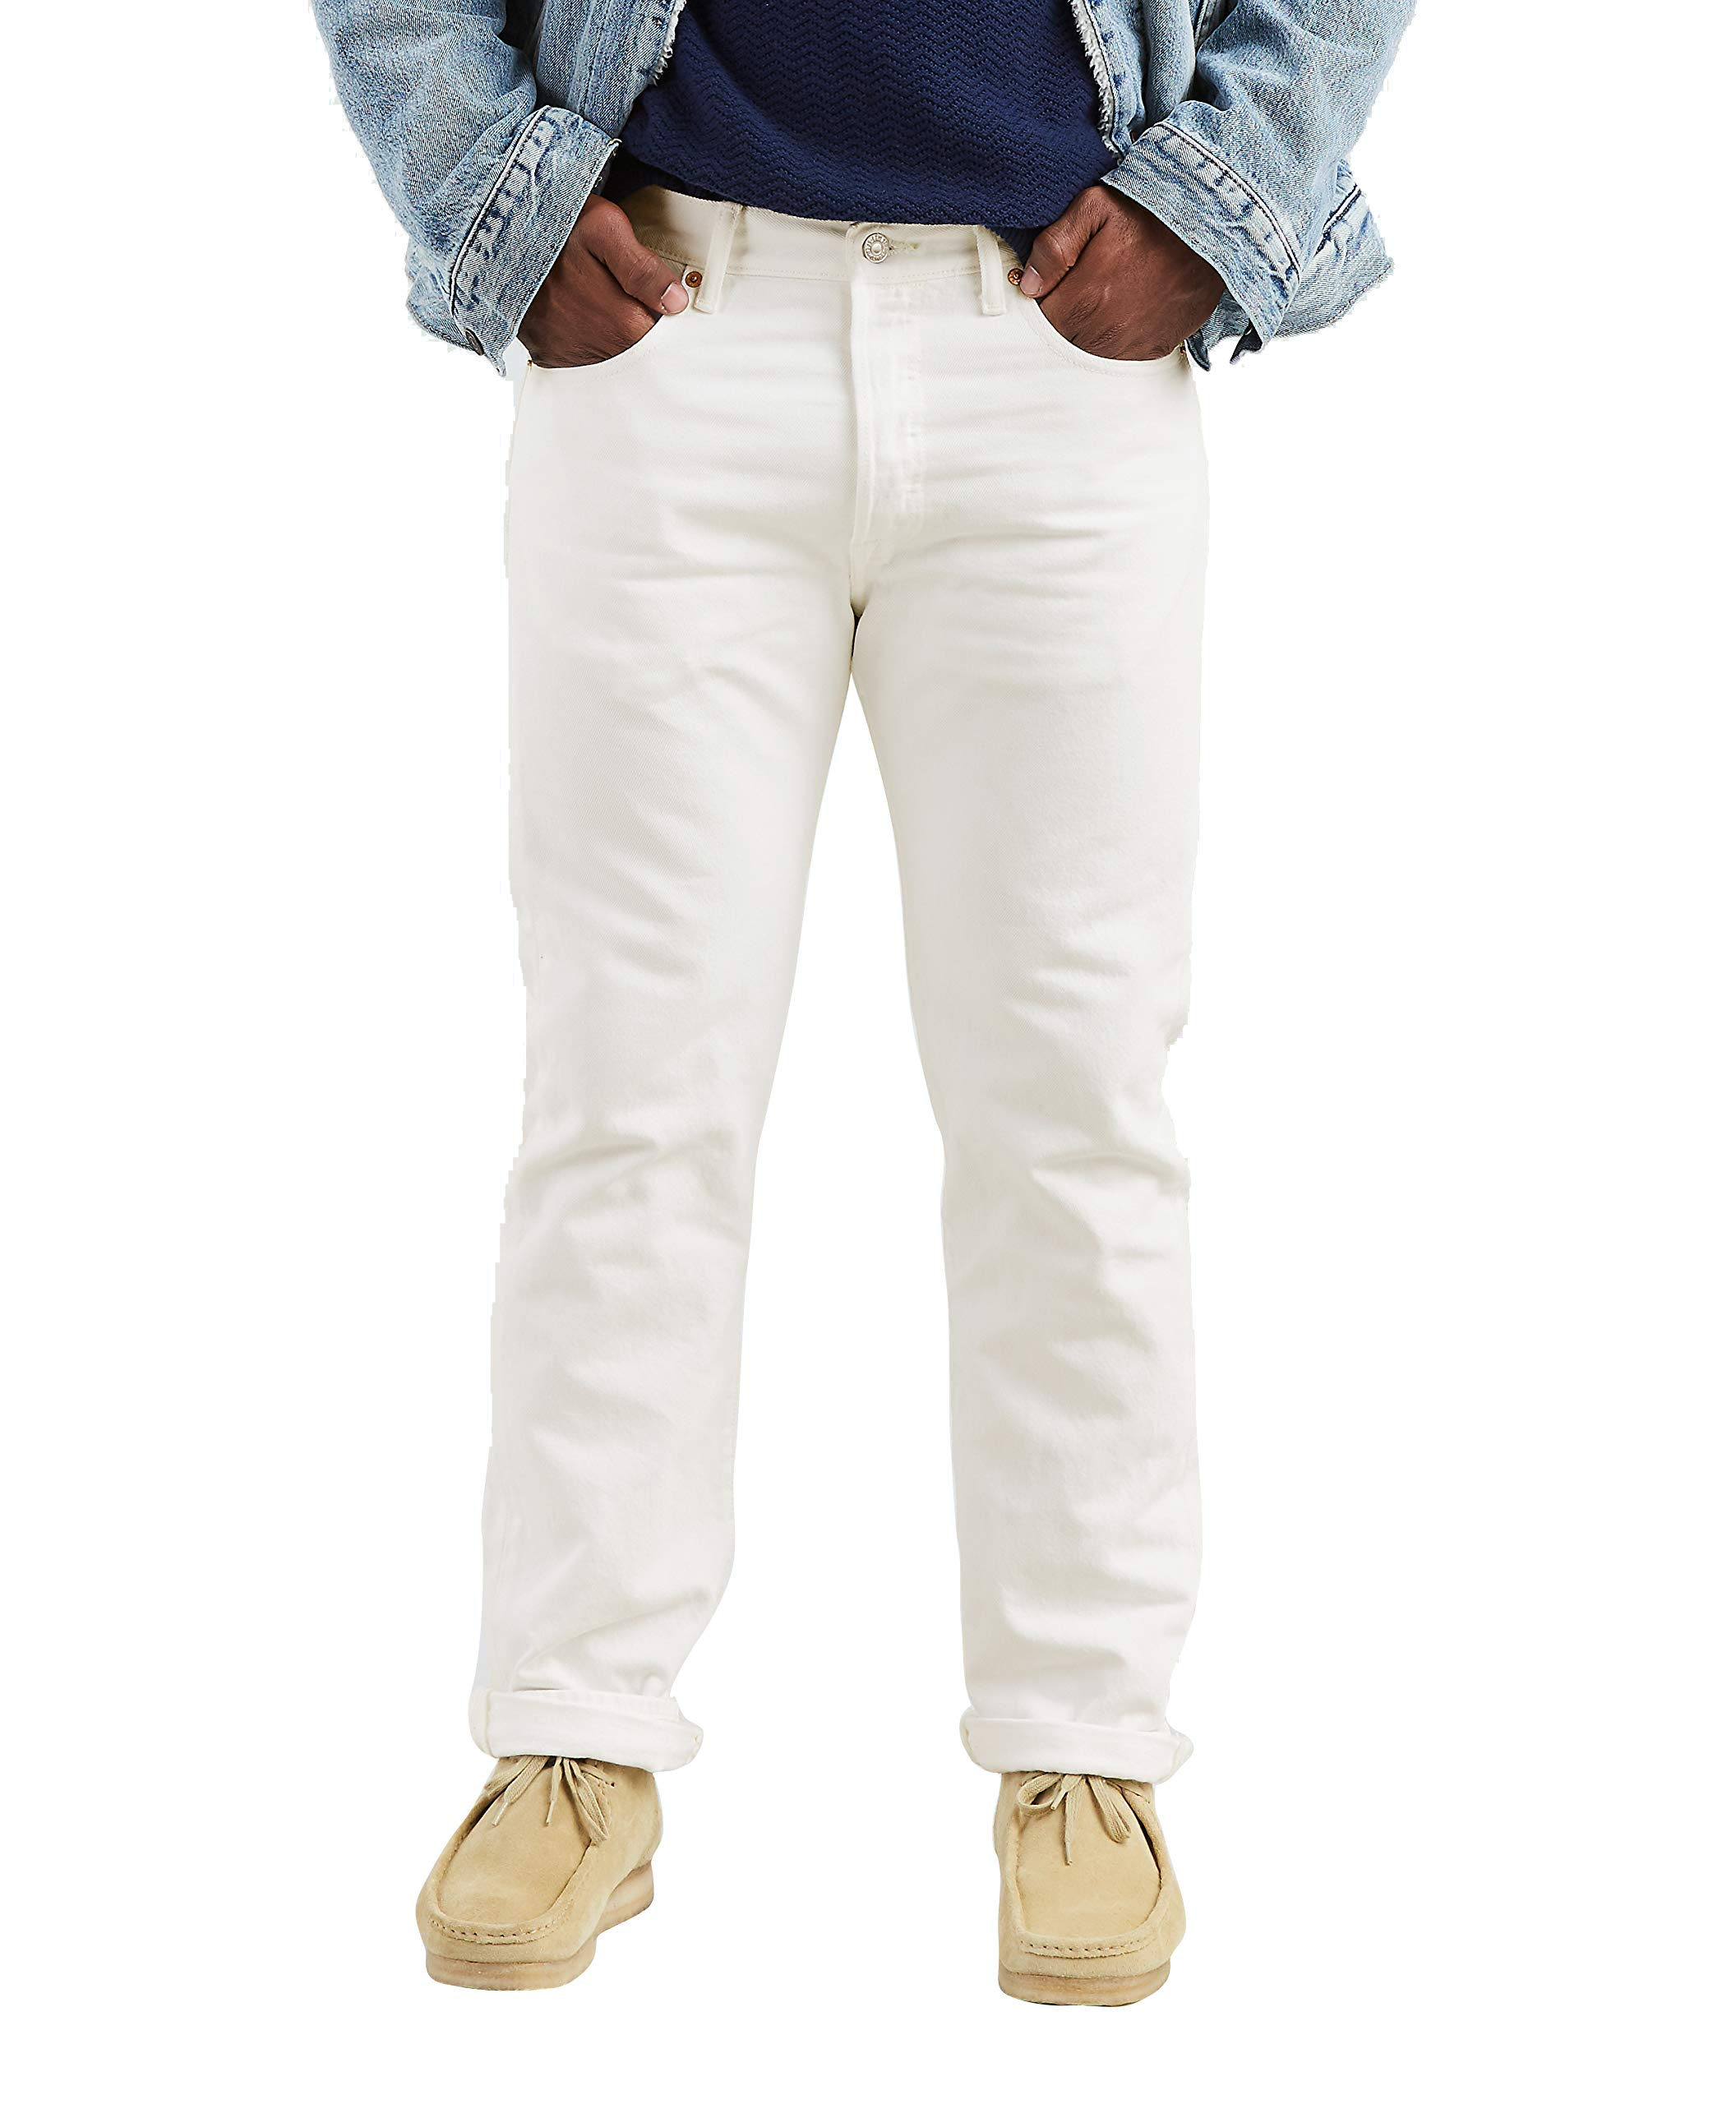 Levi's Men's 501 Original Fit Jean,Optic White,40x32